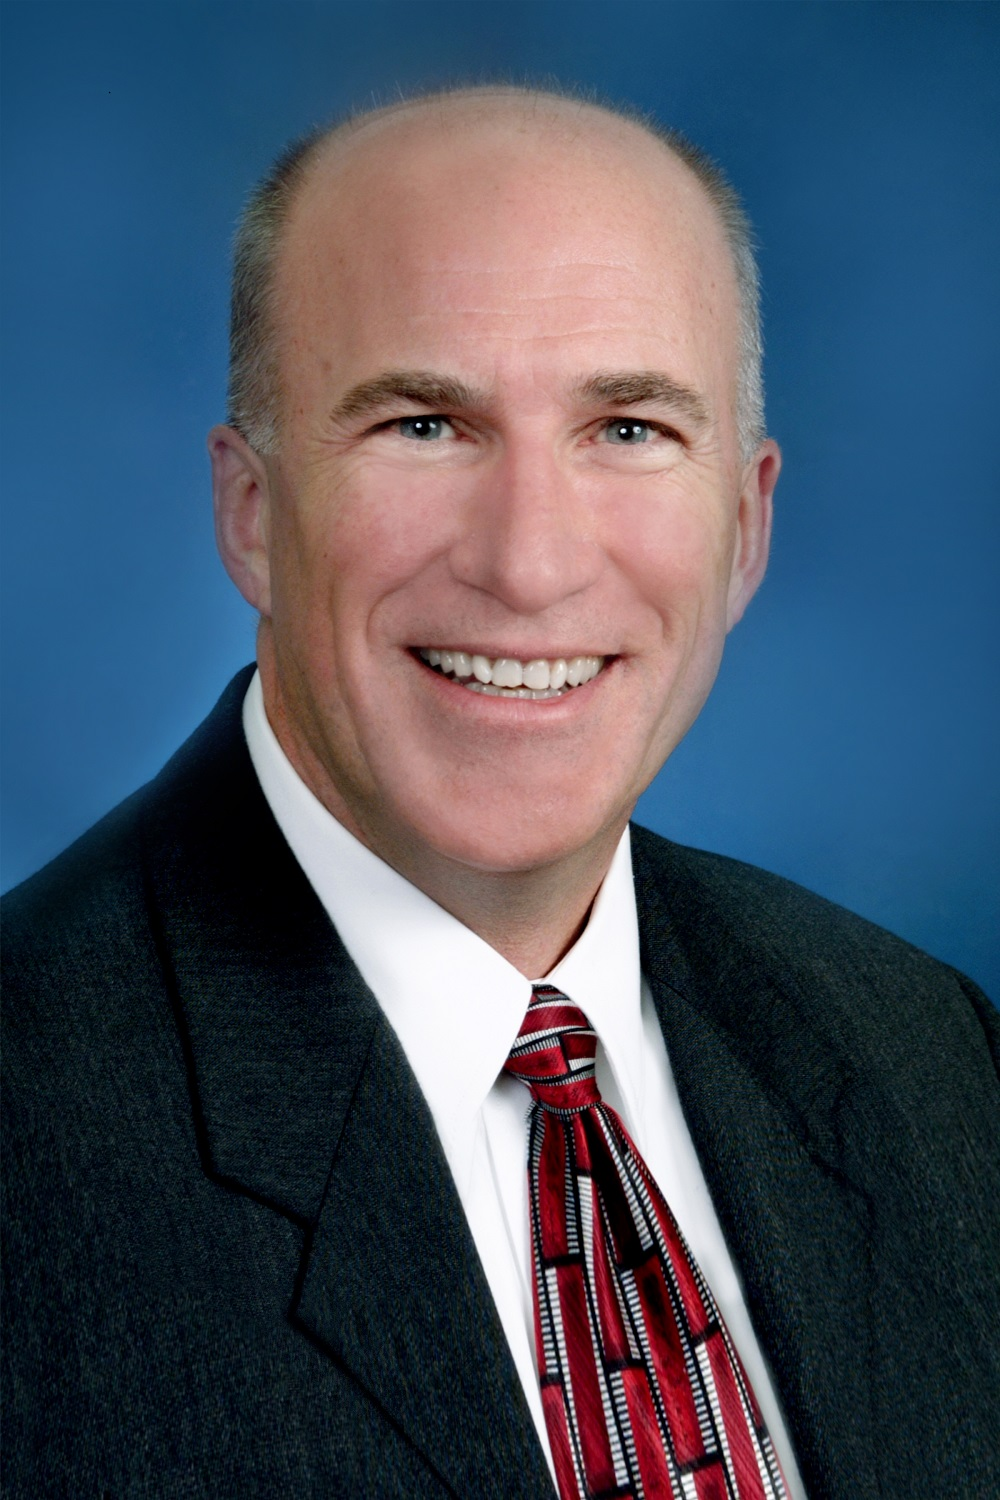 FMC Jeffrey  Welch CEO.jpg